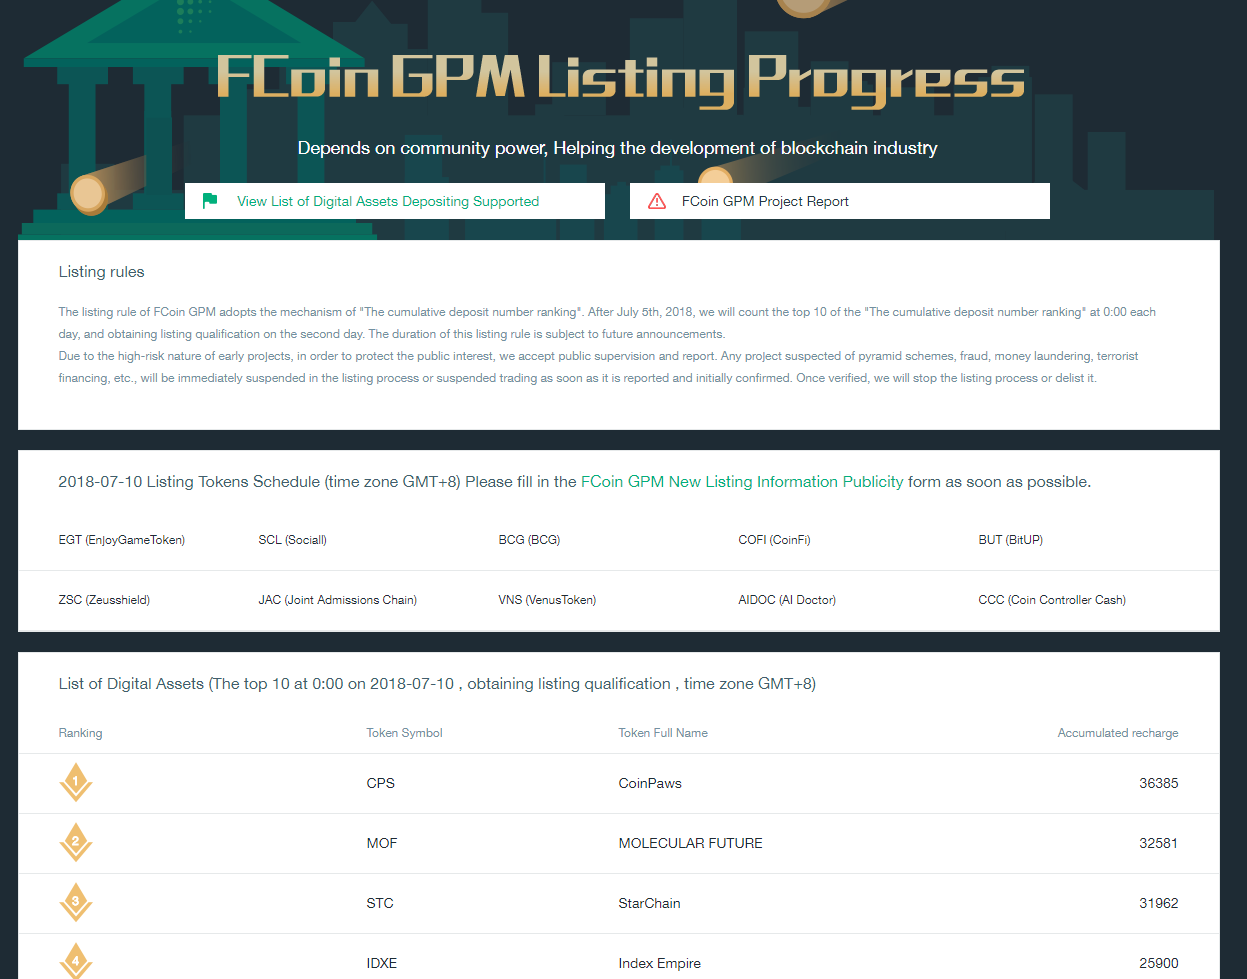 FCOIN GPM